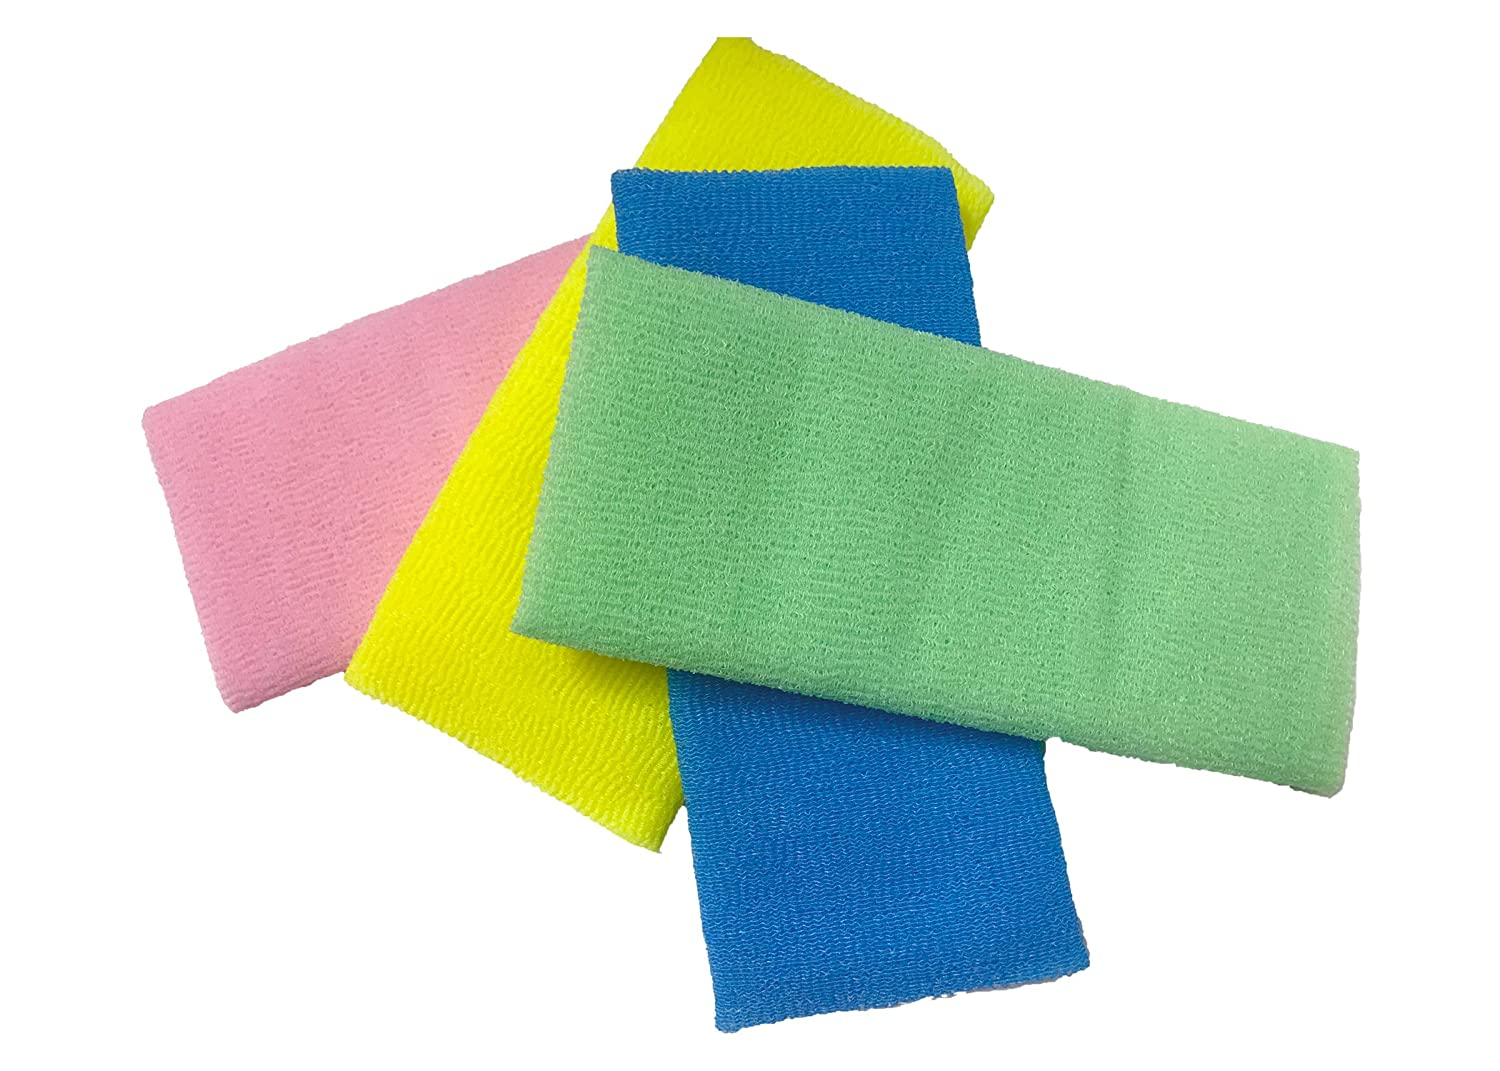 Nitram Premium Spa Exfoliating Bath Cloth Towel set (4 Pack) Extra Long (35 Inches) shower loofah body scrubber Nylon Bath scrubber Precise exfoliation Beauty Skin Bath Wash pink, green, blue, yellow